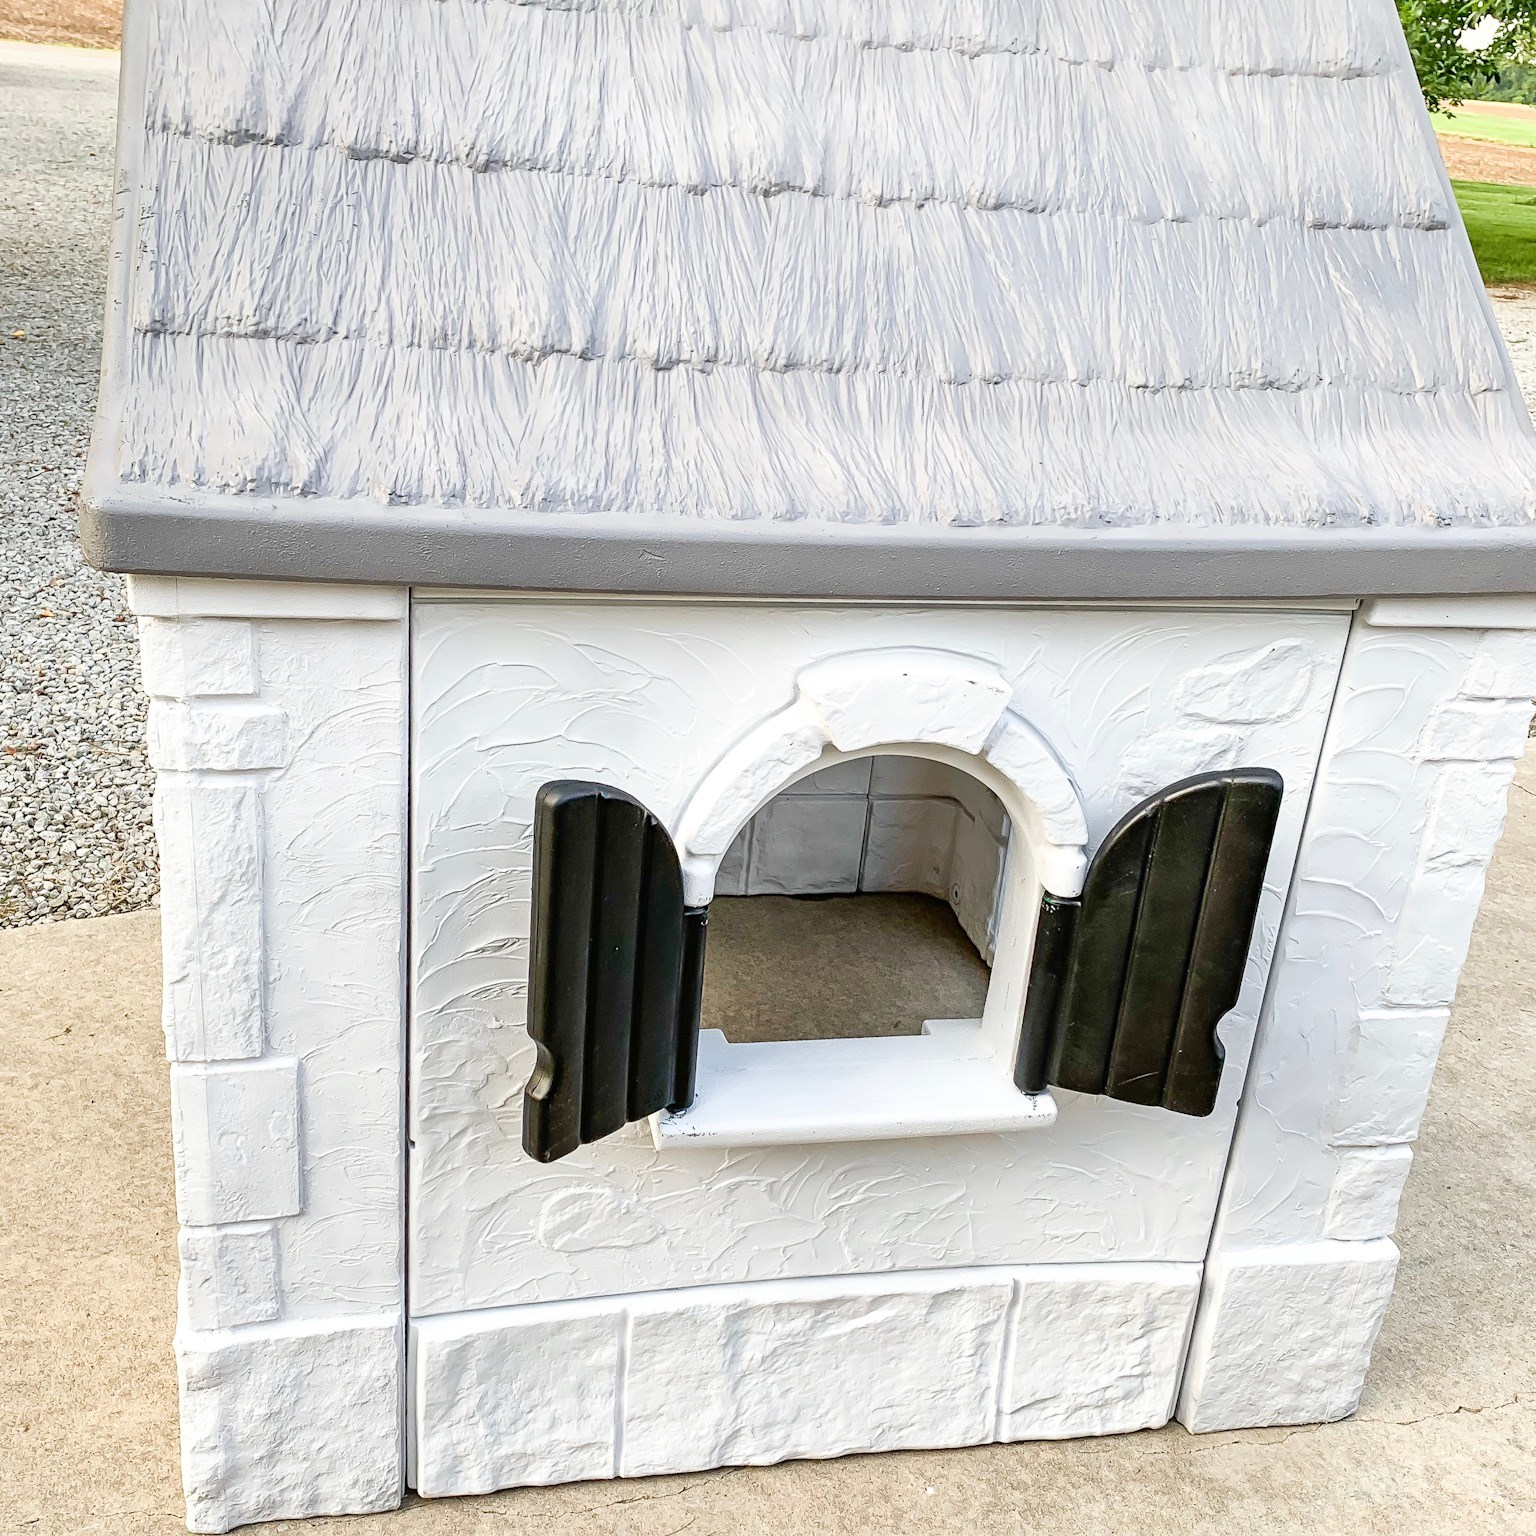 How to paint a plastic playhouse